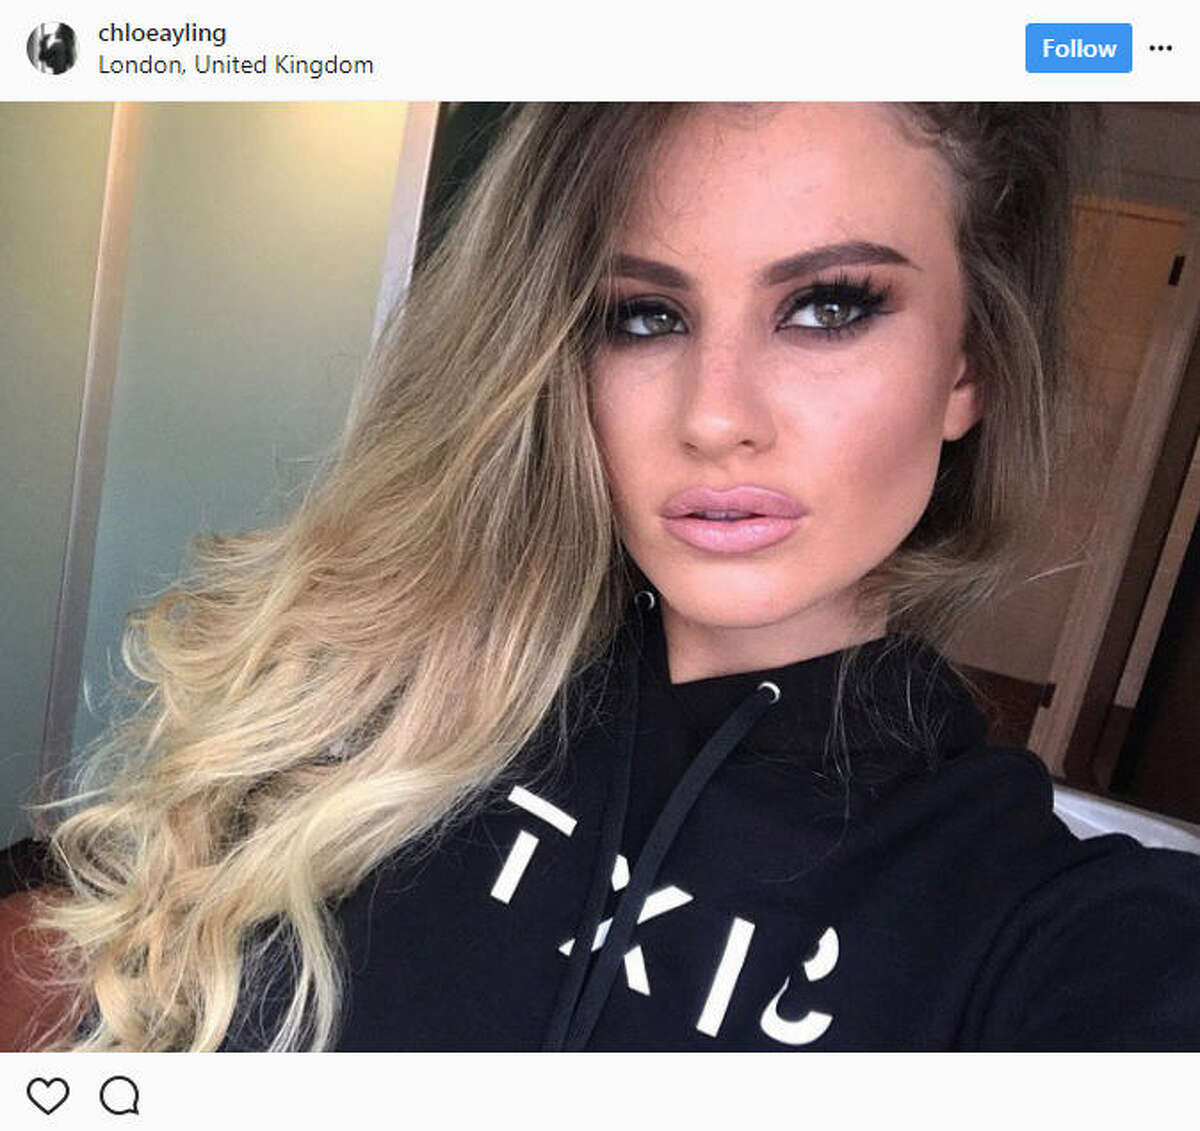 Chloe Ayling kidnapper to be extradited to Italy, judge